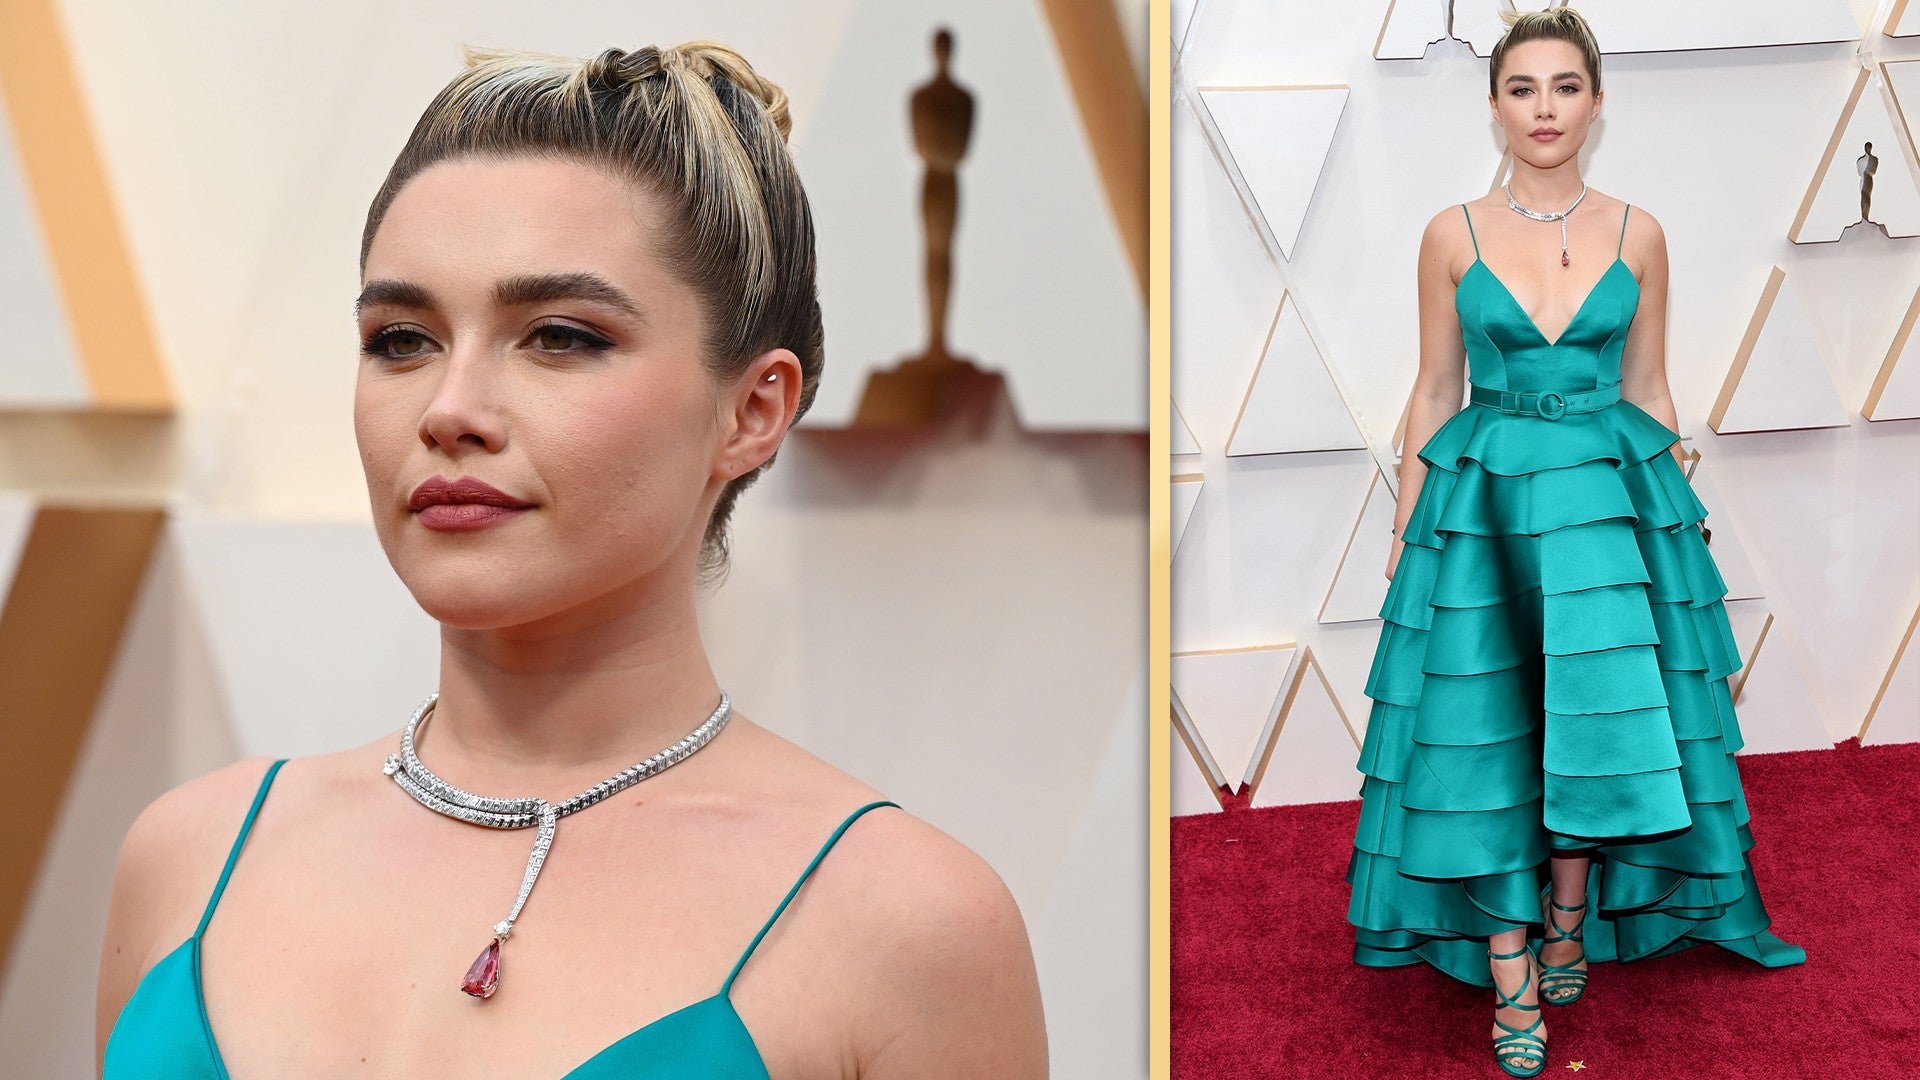 Florence Pugh Stuns in Turquoise on 2020 Oscars Red Carpet 1920x1080